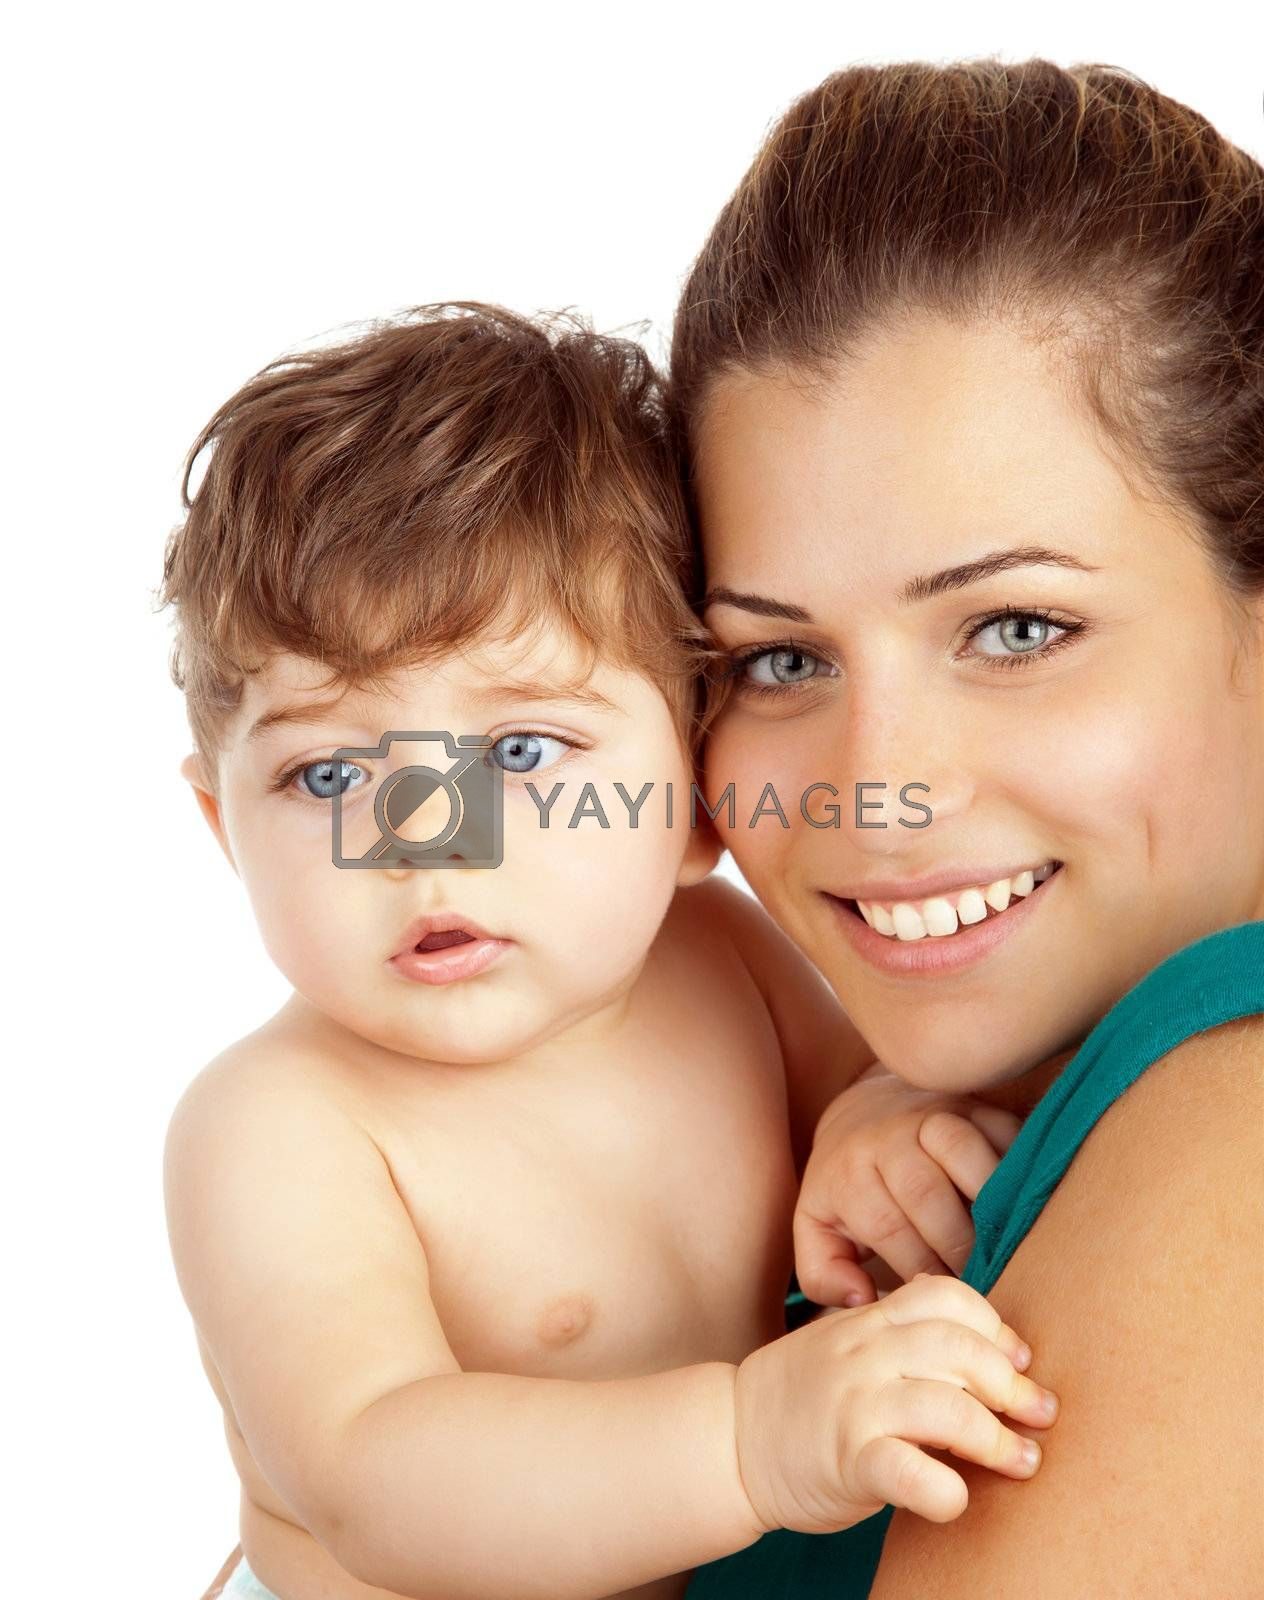 Closeup portrait of beautiful young mother with son, pretty mommy holding cute baby boy, attractive adult woman hugging sweet toddler, cute mom and adorable little child isolated on white background